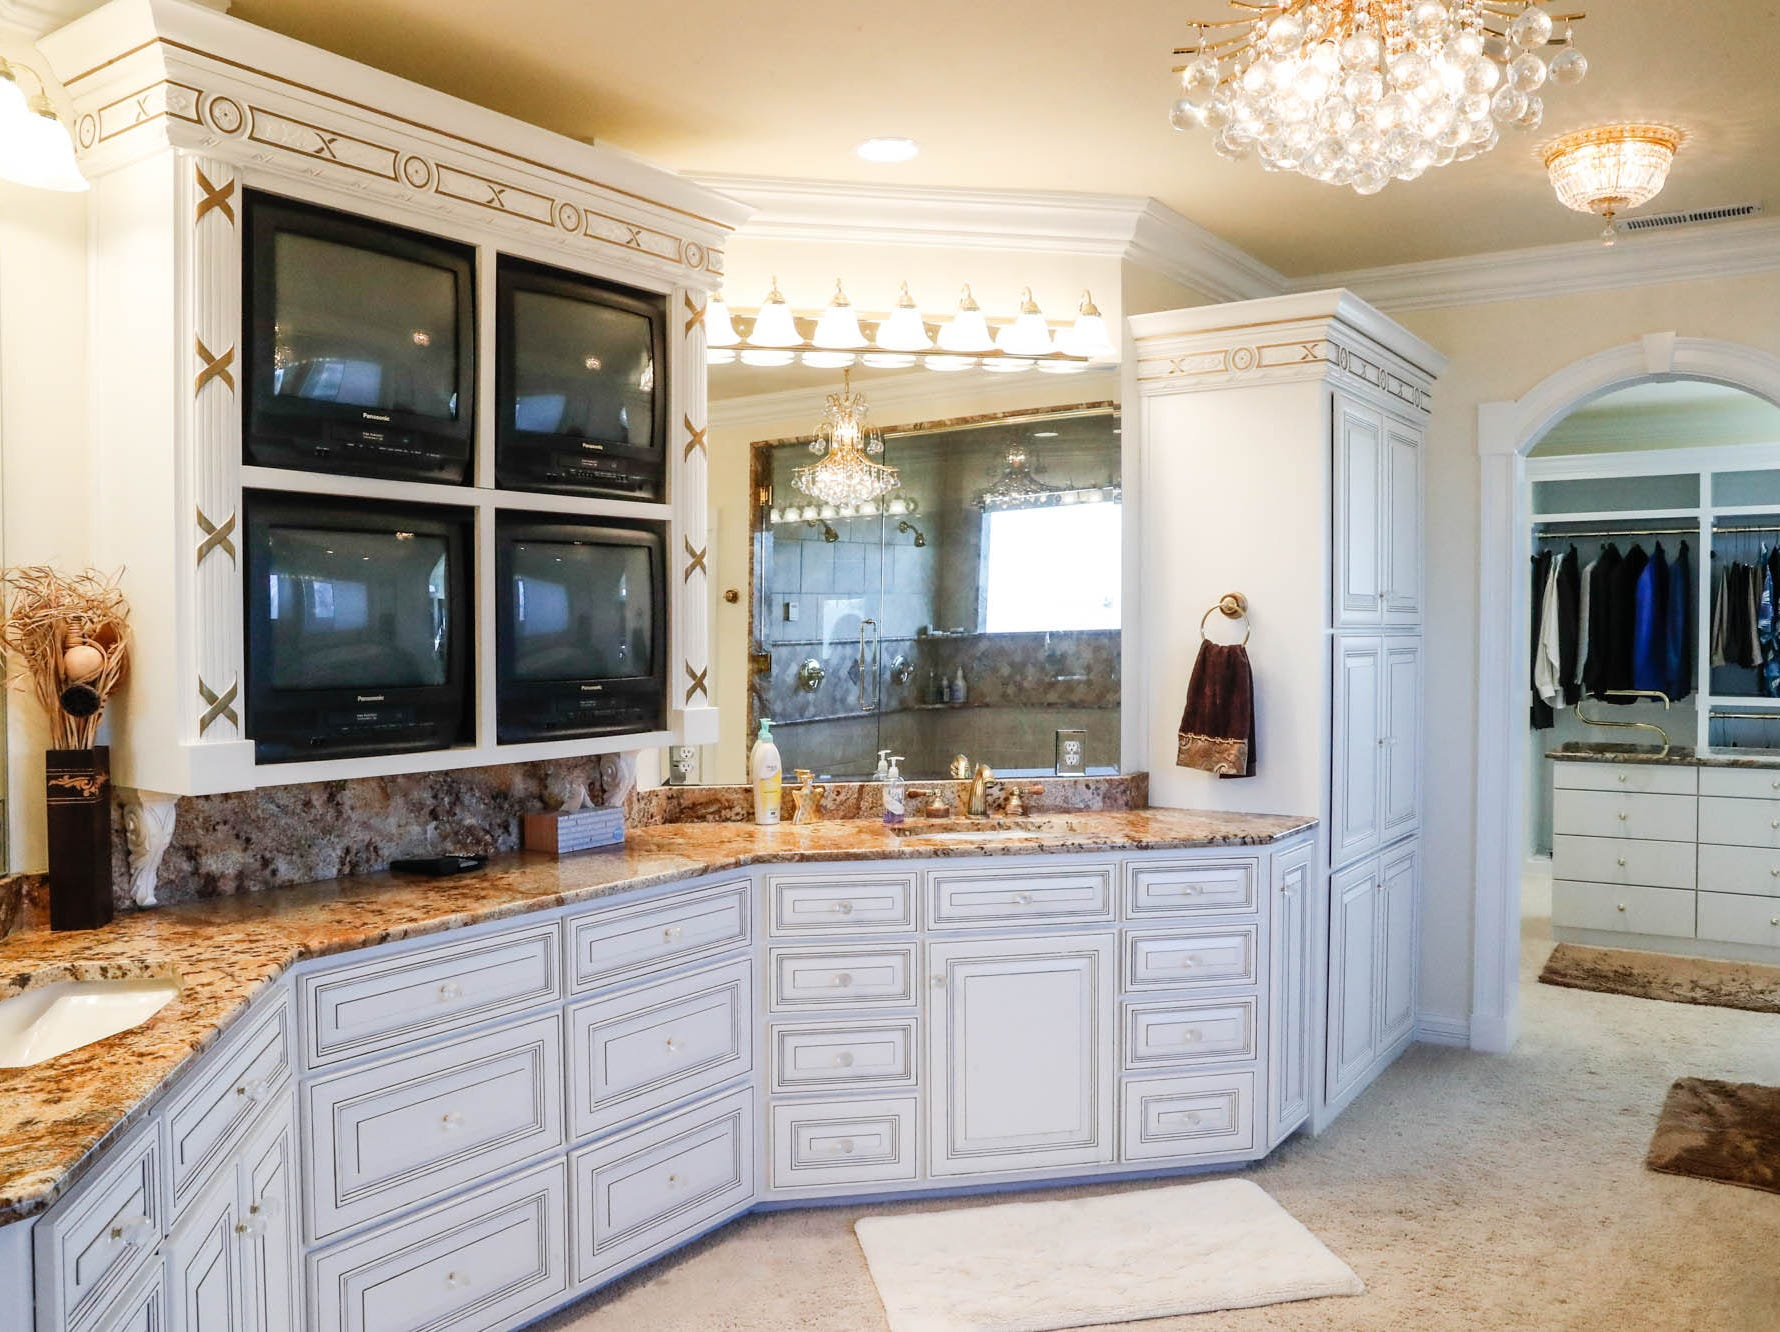 A second-floor master bath, one of two in the home, features four TV's, and all the space you could ever need, at a Greenwood home up for sale at 1216 Stone Ridge Court, Greenwood, Ind. on Wednesday, Jan. 30, 2019. The home features 8,234 square feet, four bedrooms, two master suites, a 10 car garage, and an exercise room.